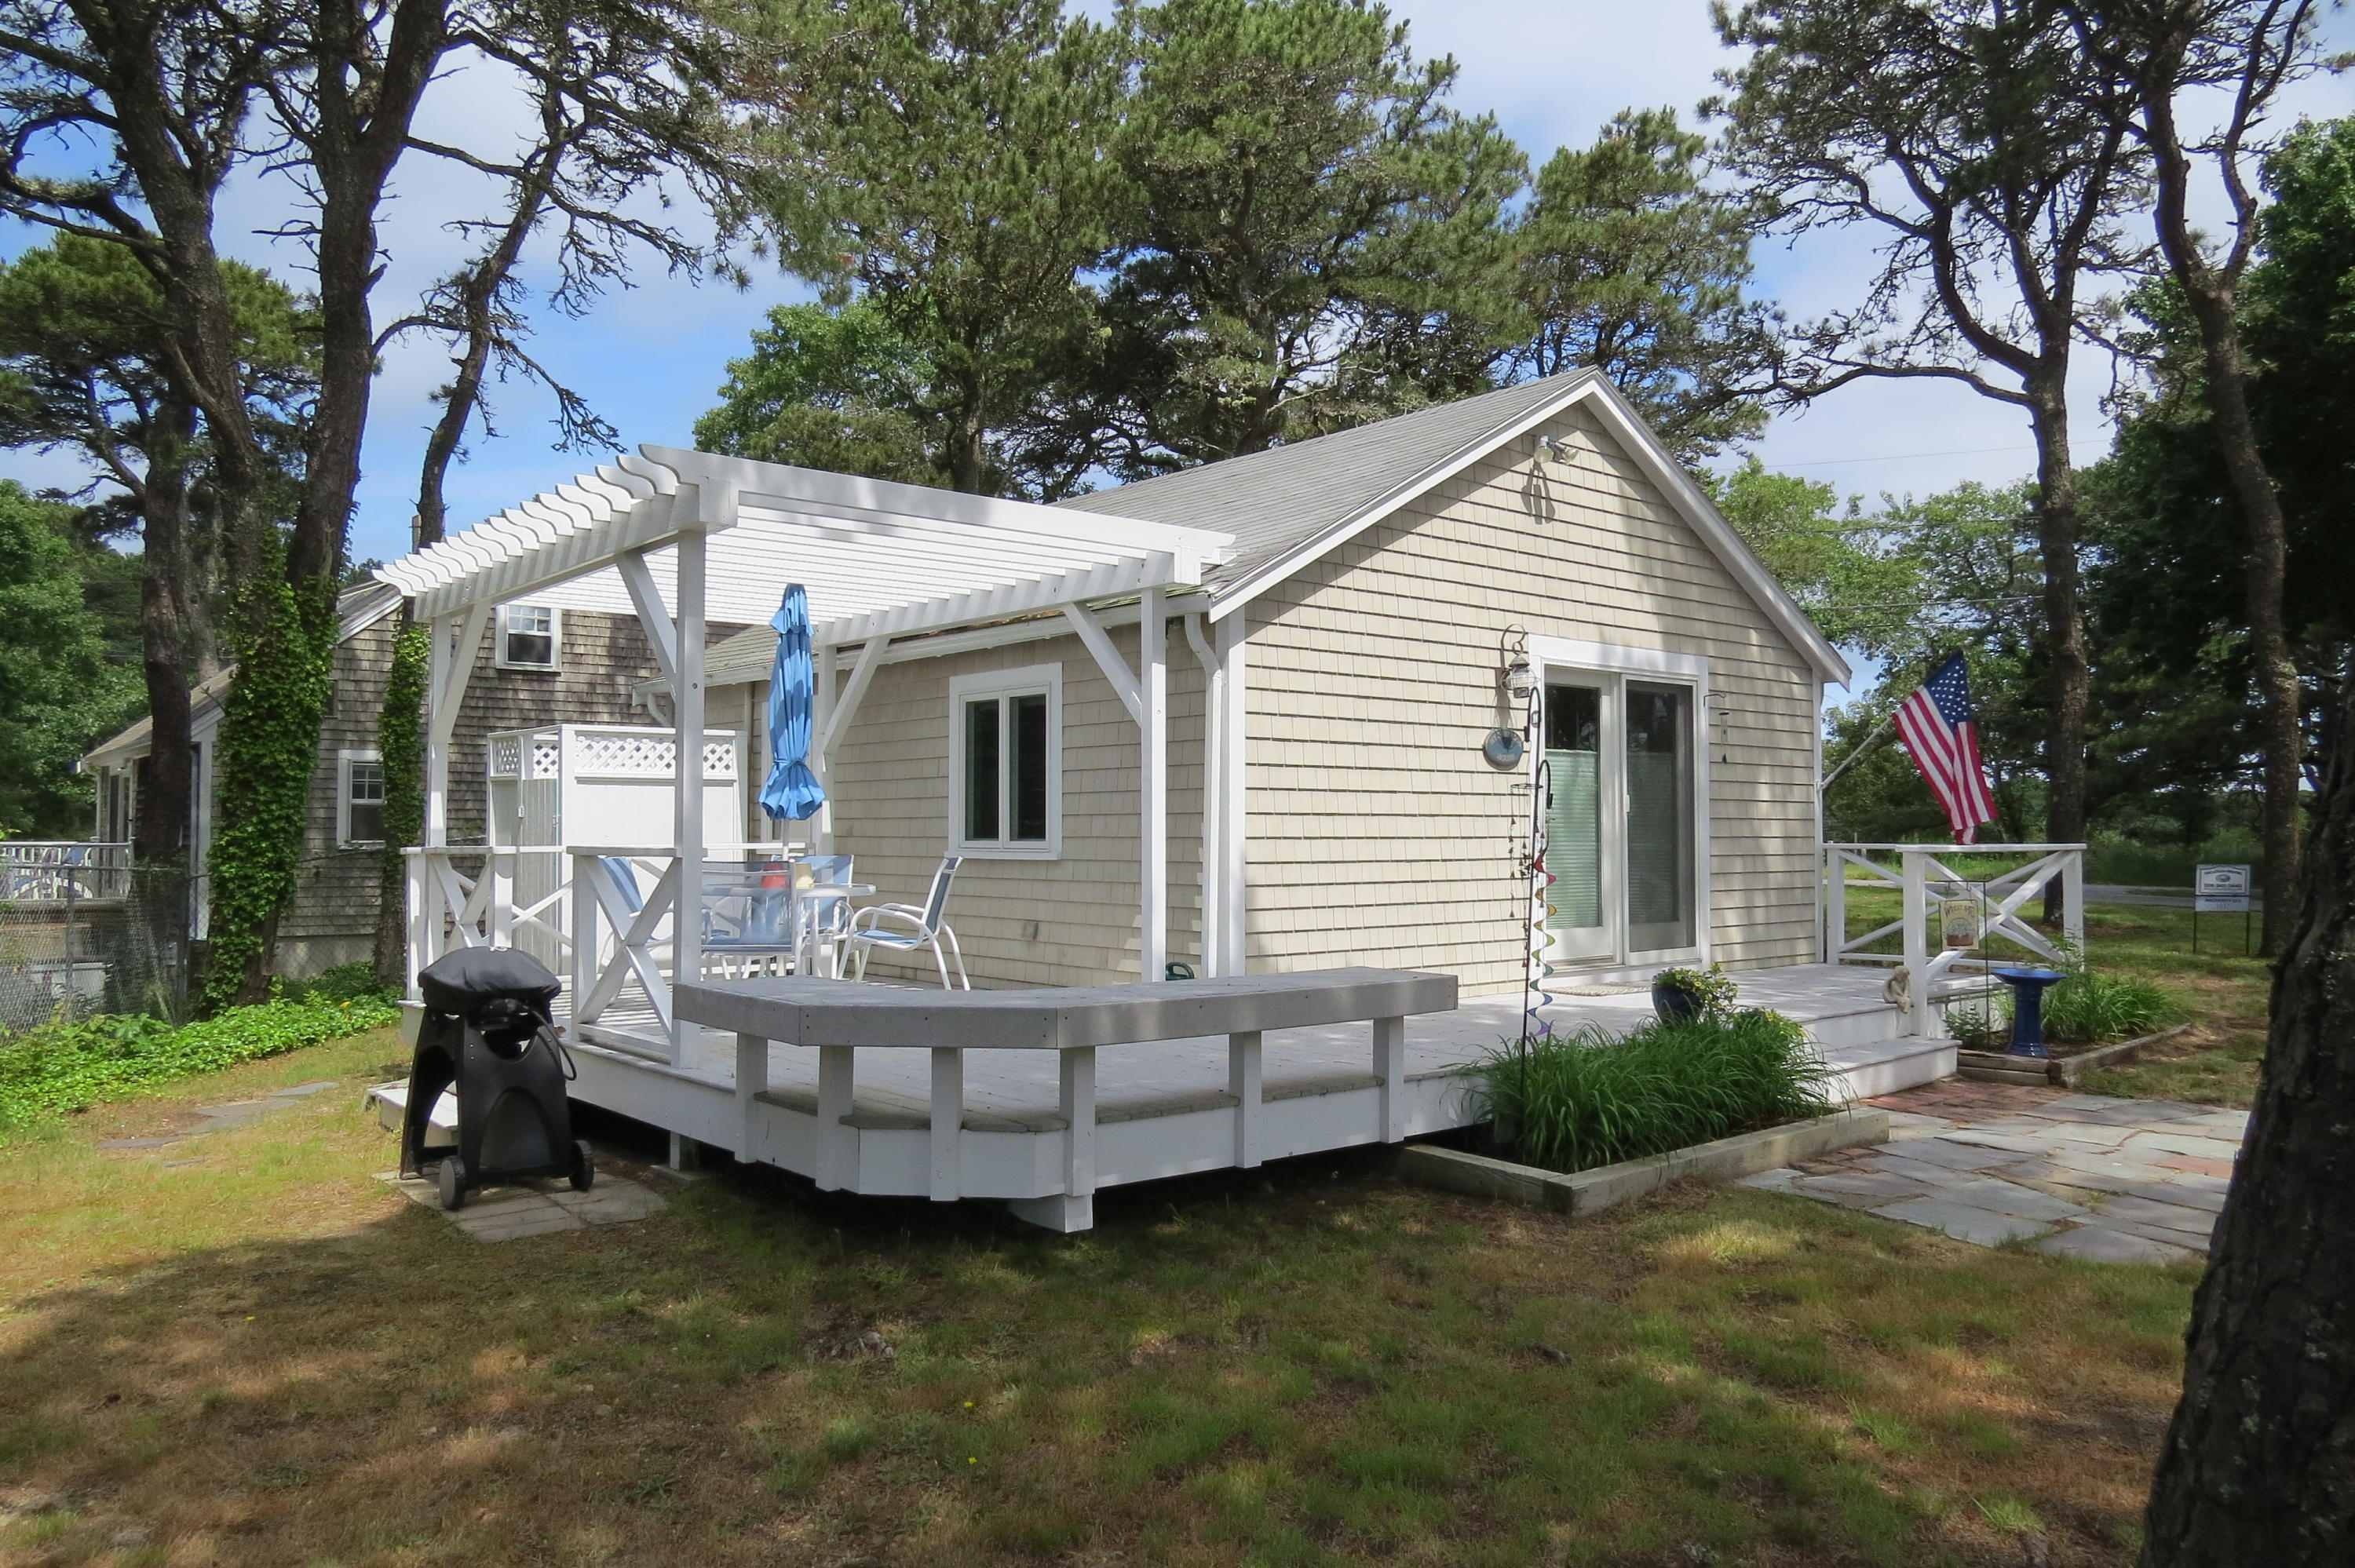 10-squanto-drive-west-chatham-ma-02633